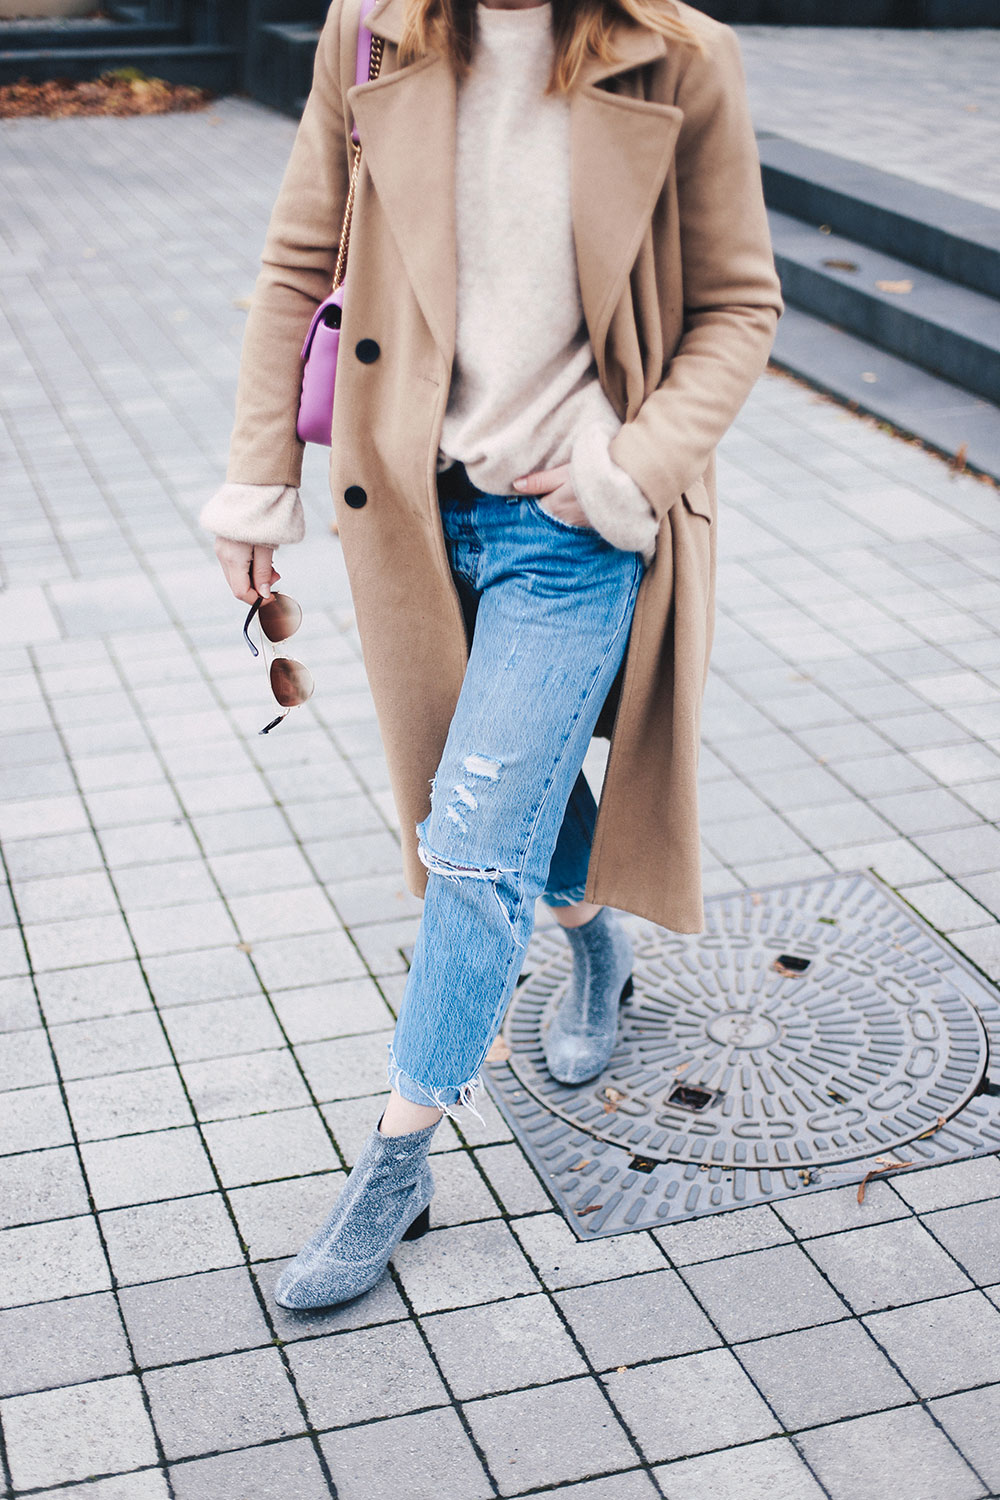 Boyfriend Jeans Outfit mit Camel Mantel und Glitzer-Boots, Fashion Blog, Modeblog, Outfit Blog, Style Diary, Glitzer Boots, Levis 501 CT Outfit, Vila Mantel, GG Marmont pink, whoismocca.com